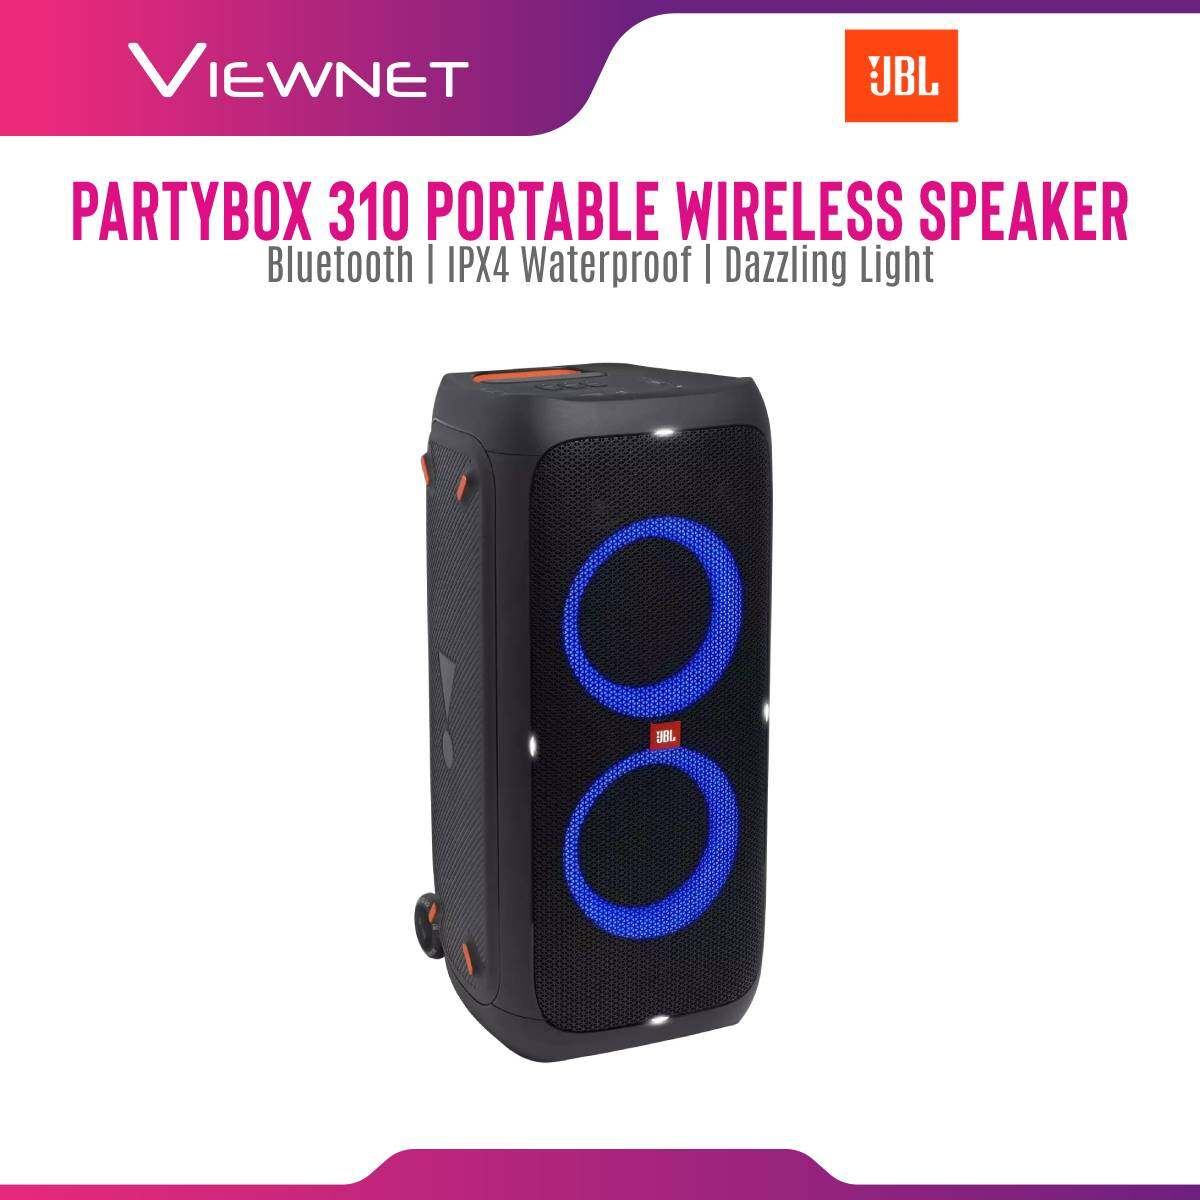 JBL Partybox 310 AS Portable Speaker with Dazzling Light , Blurtooth , Easy To Carry